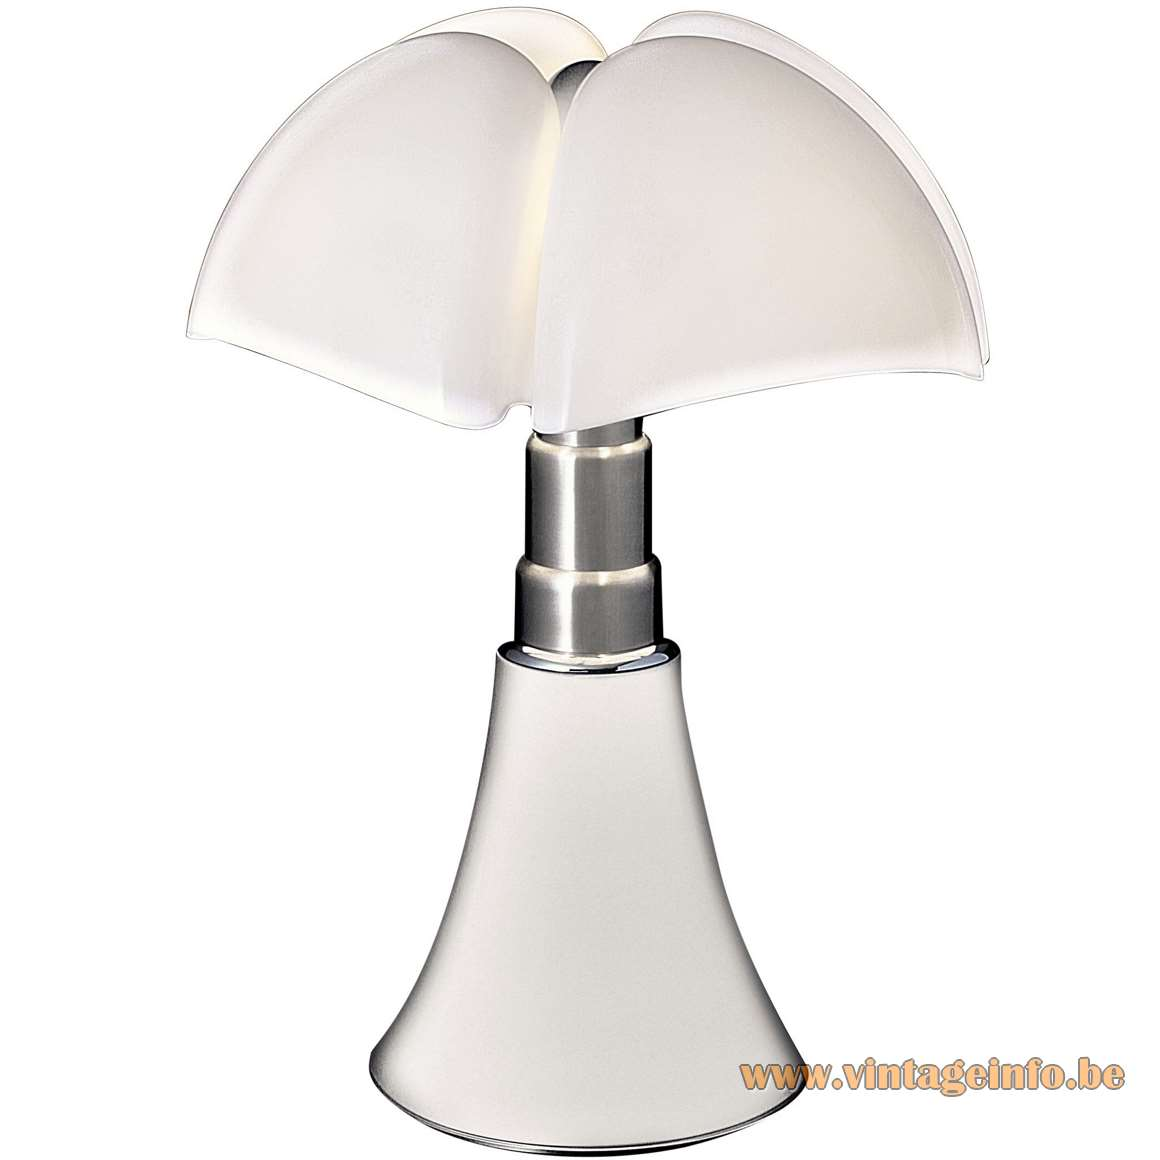 Martinelli Luce Pipistrello table lamp design: Gae Aulenti white acrylic bat lampshade adjustable metal base 1960s